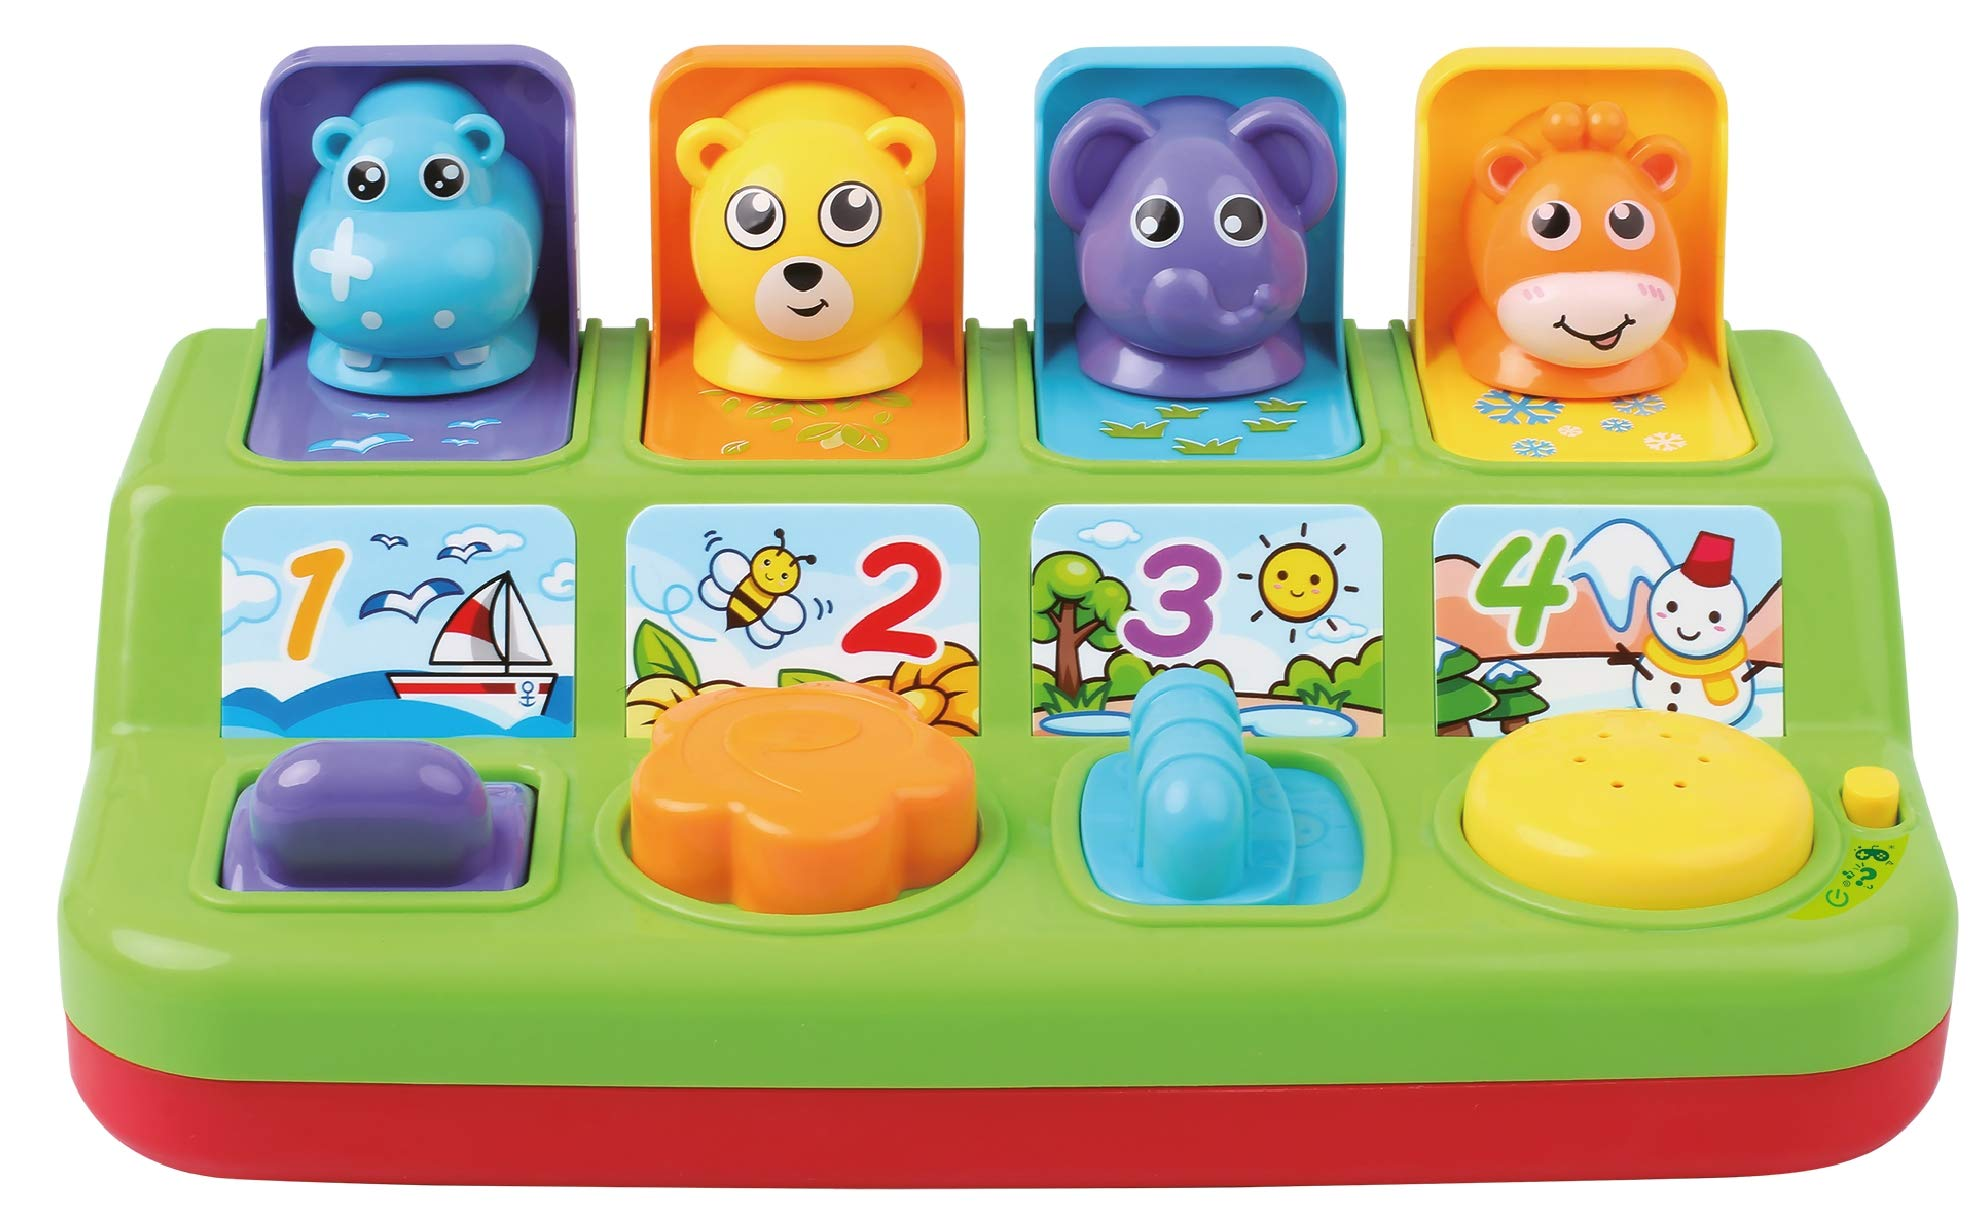 Toys For 4 And Up : Tg interactive pop up animals toy for toddlers